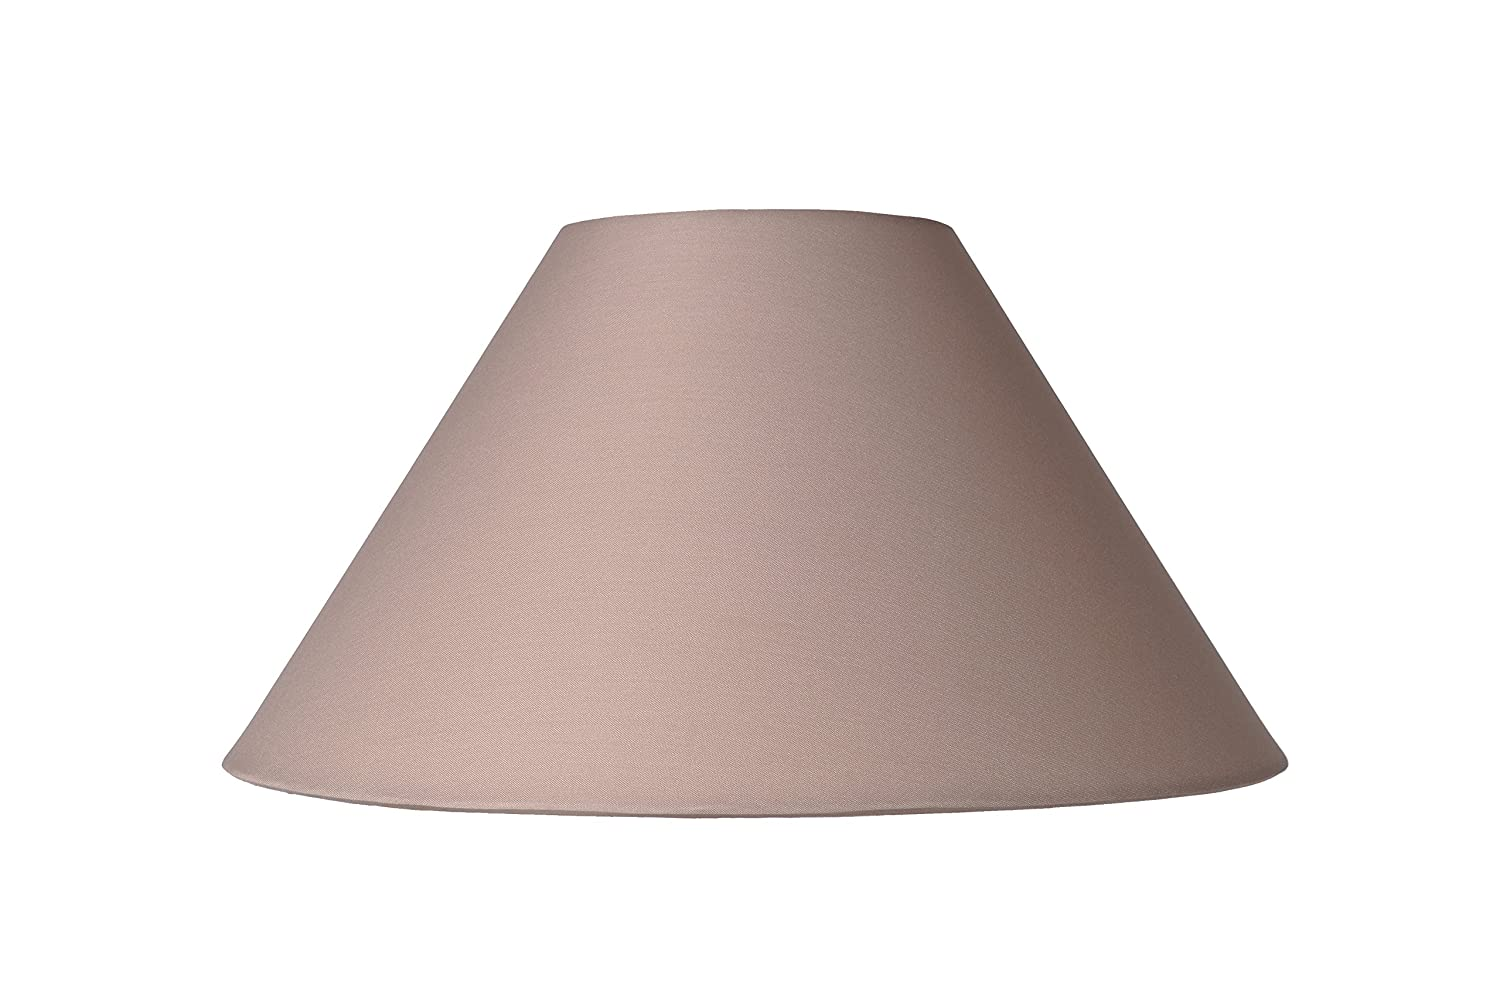 Lucide SHADE - Abat Jour Lampe - Ø 32 cm - Taupe 61007/32/41